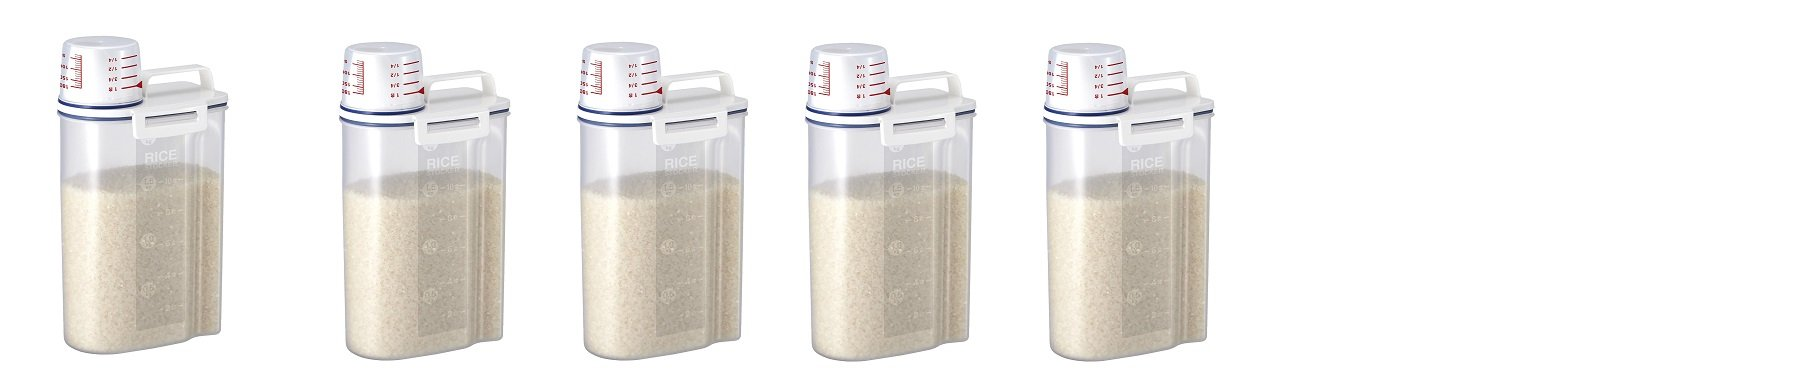 Rice Storage Bin with Pour Spout by Asvel 2kg (5 PACK)